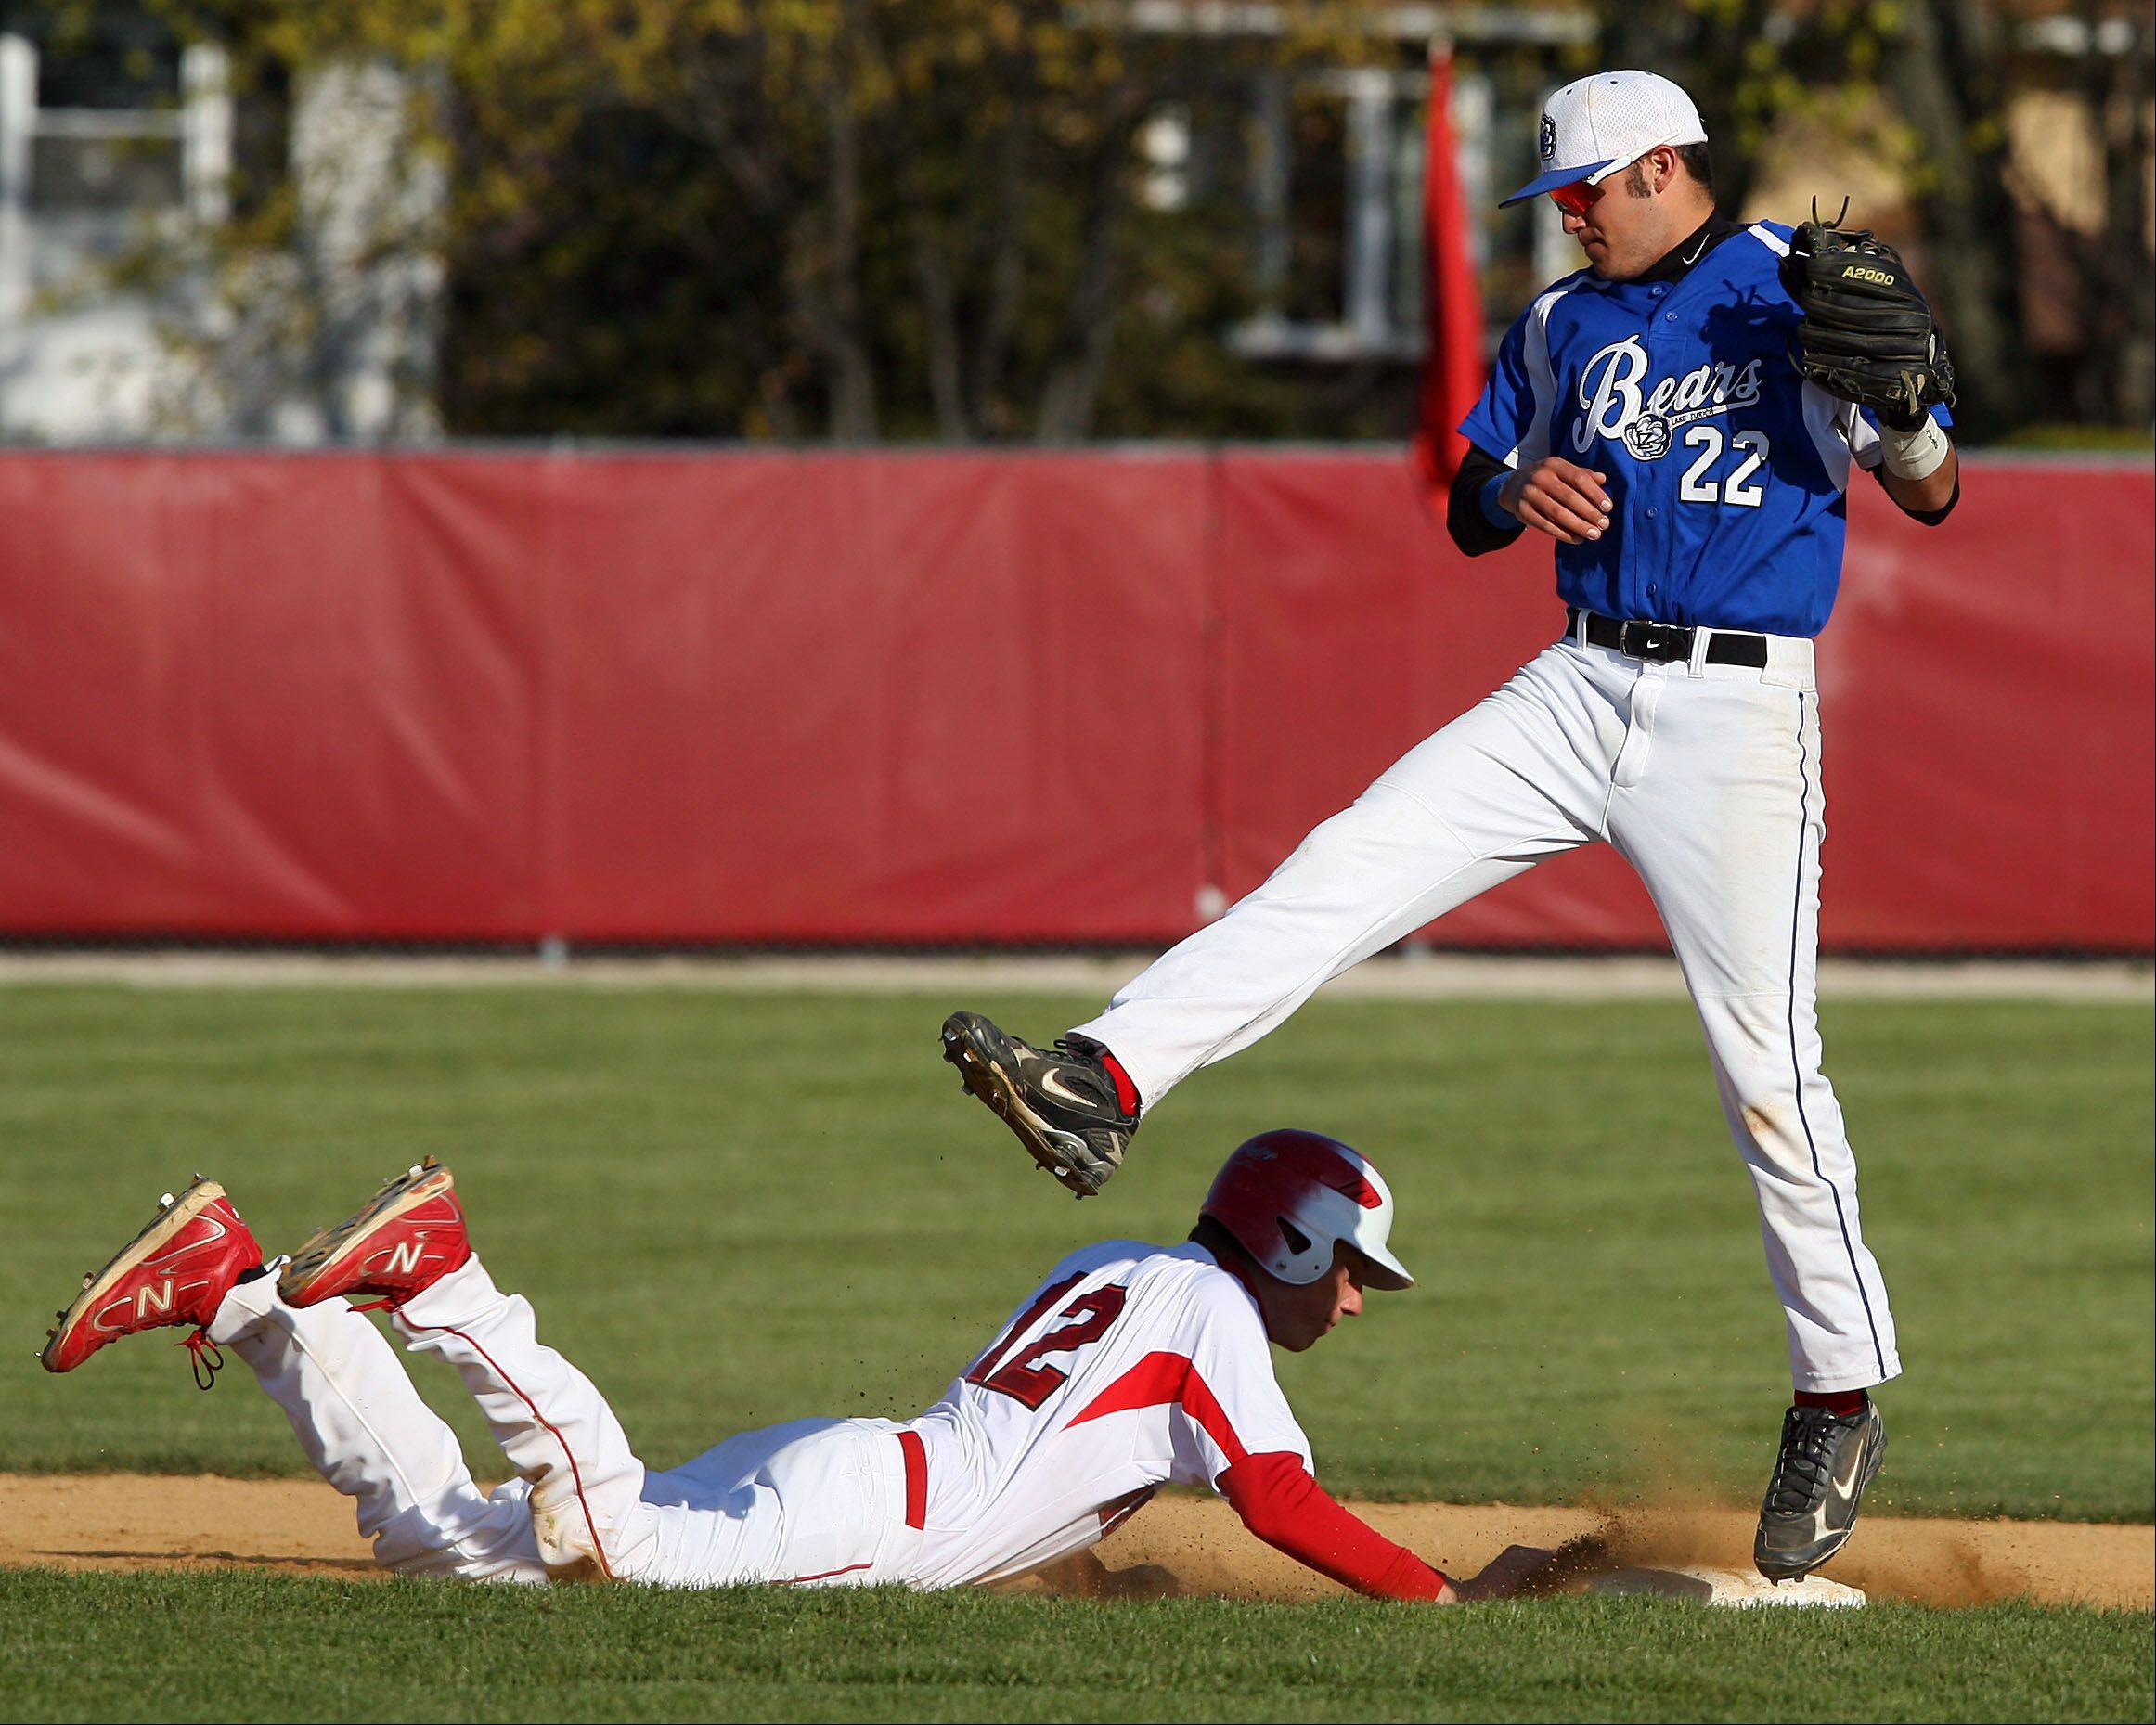 Lake Zurich shortstop Joey Pizzolato, right, will be taking the juco route next year. The senior has given a verbal commitment to the College of San Mateo in California.